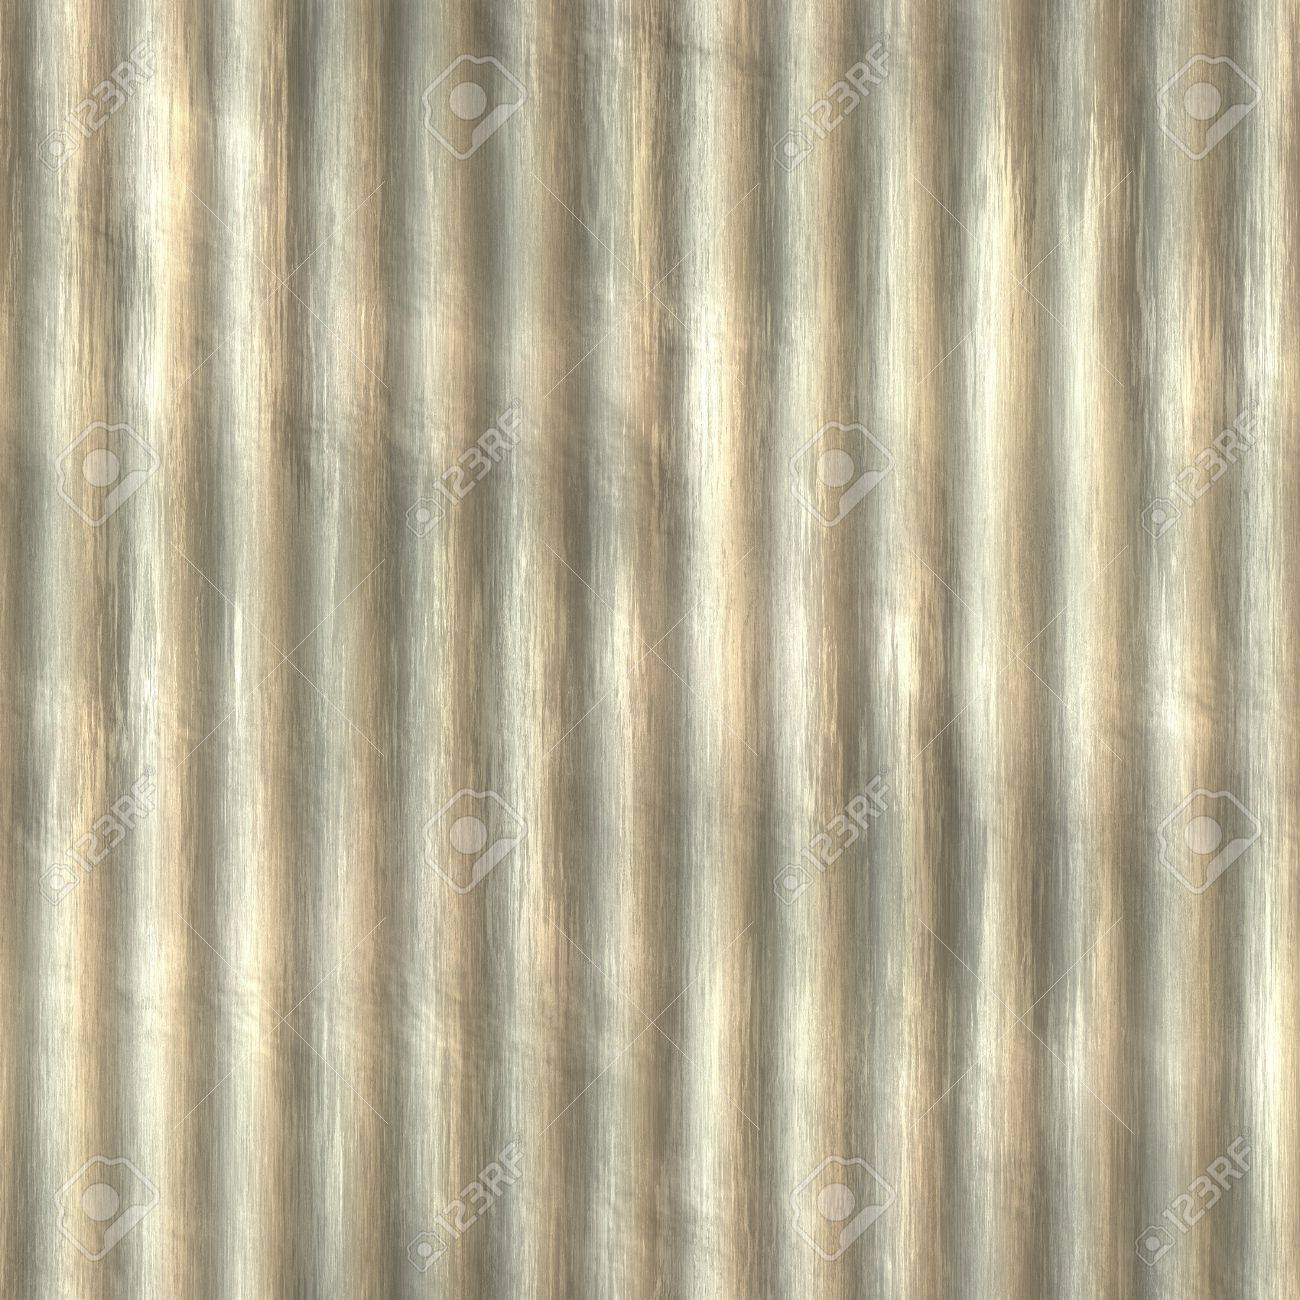 Corrugated Metal Seamless texture Stock Photo   14006291. Corrugated Metal Seamless Texture Stock Photo  Picture And Royalty